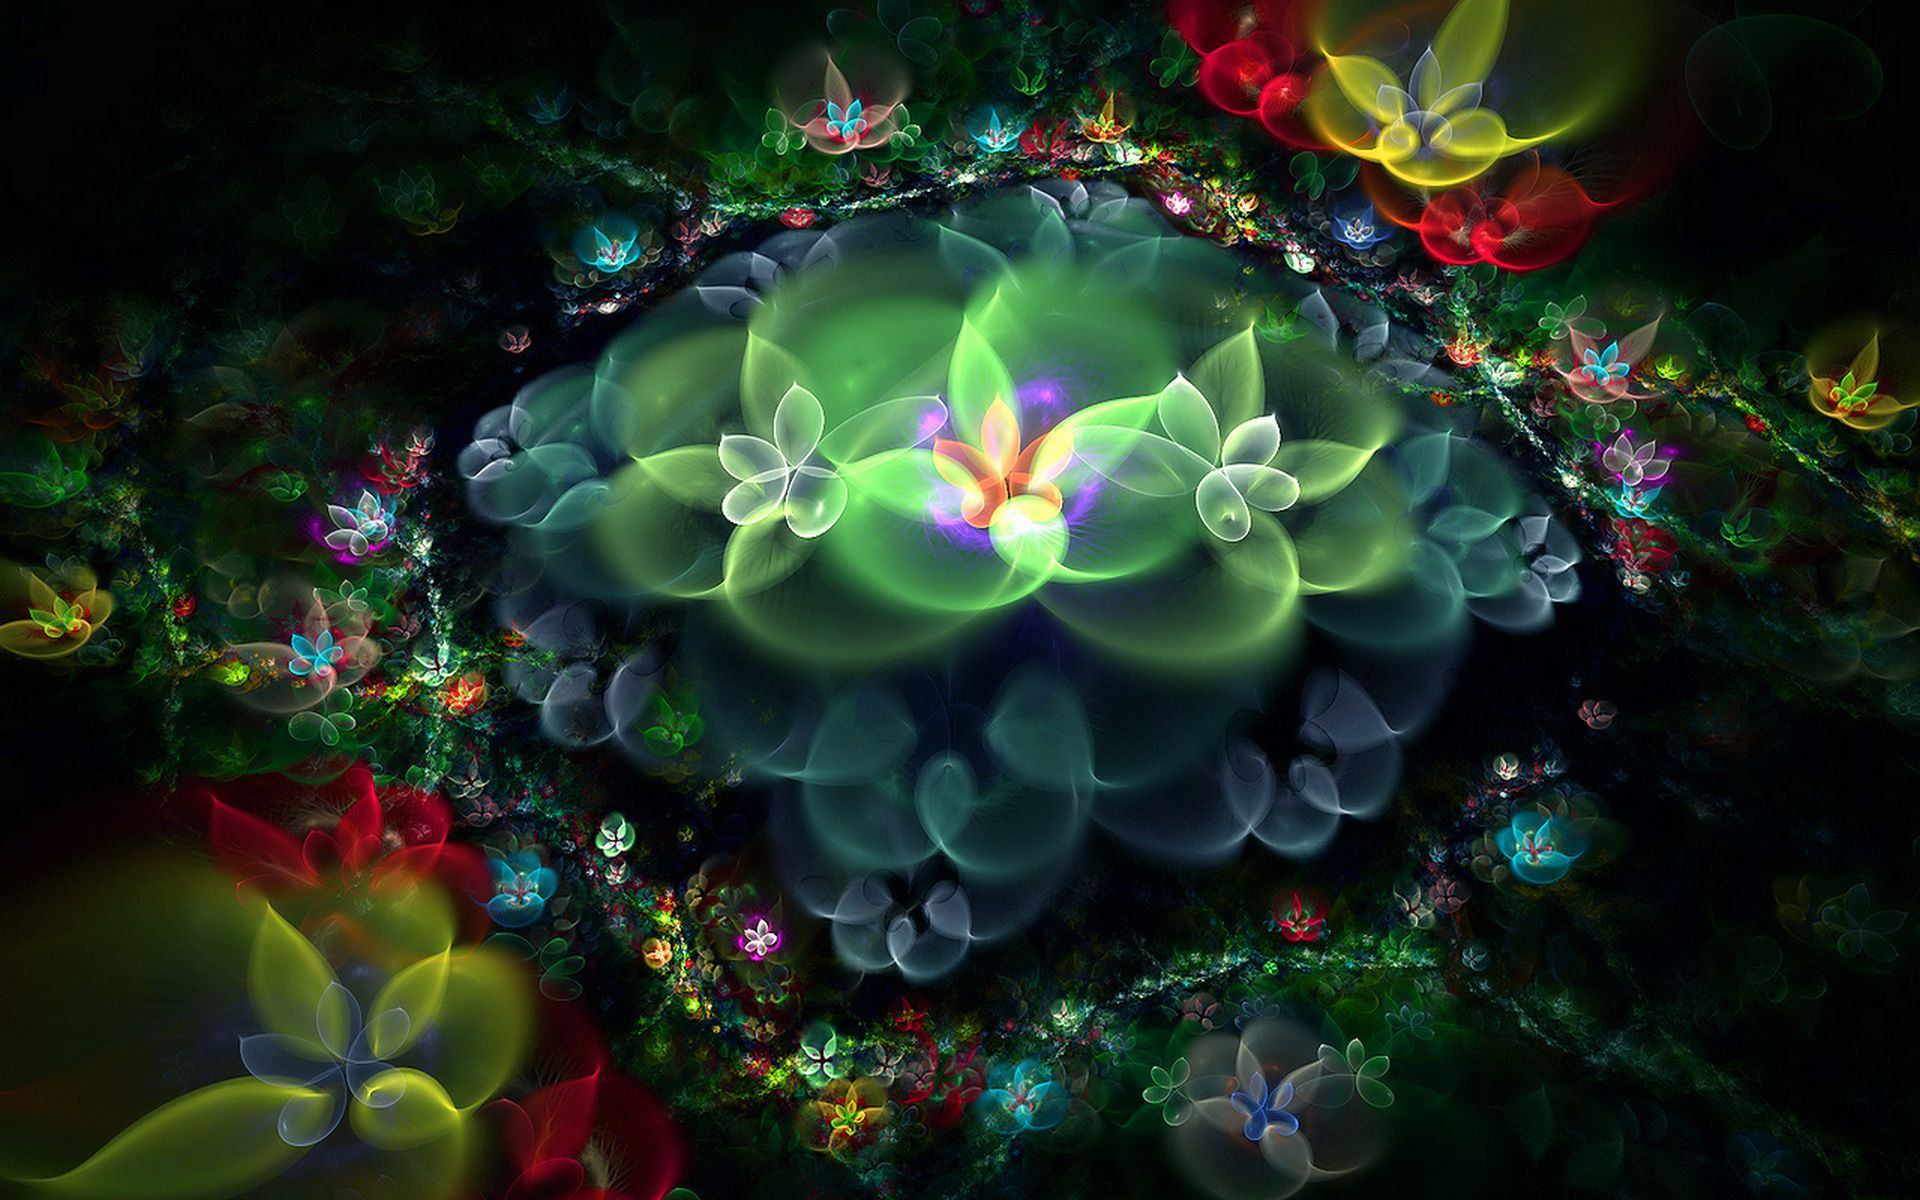 Abstraction, Picture, Colorfully, Unusual, Wallpaper 12